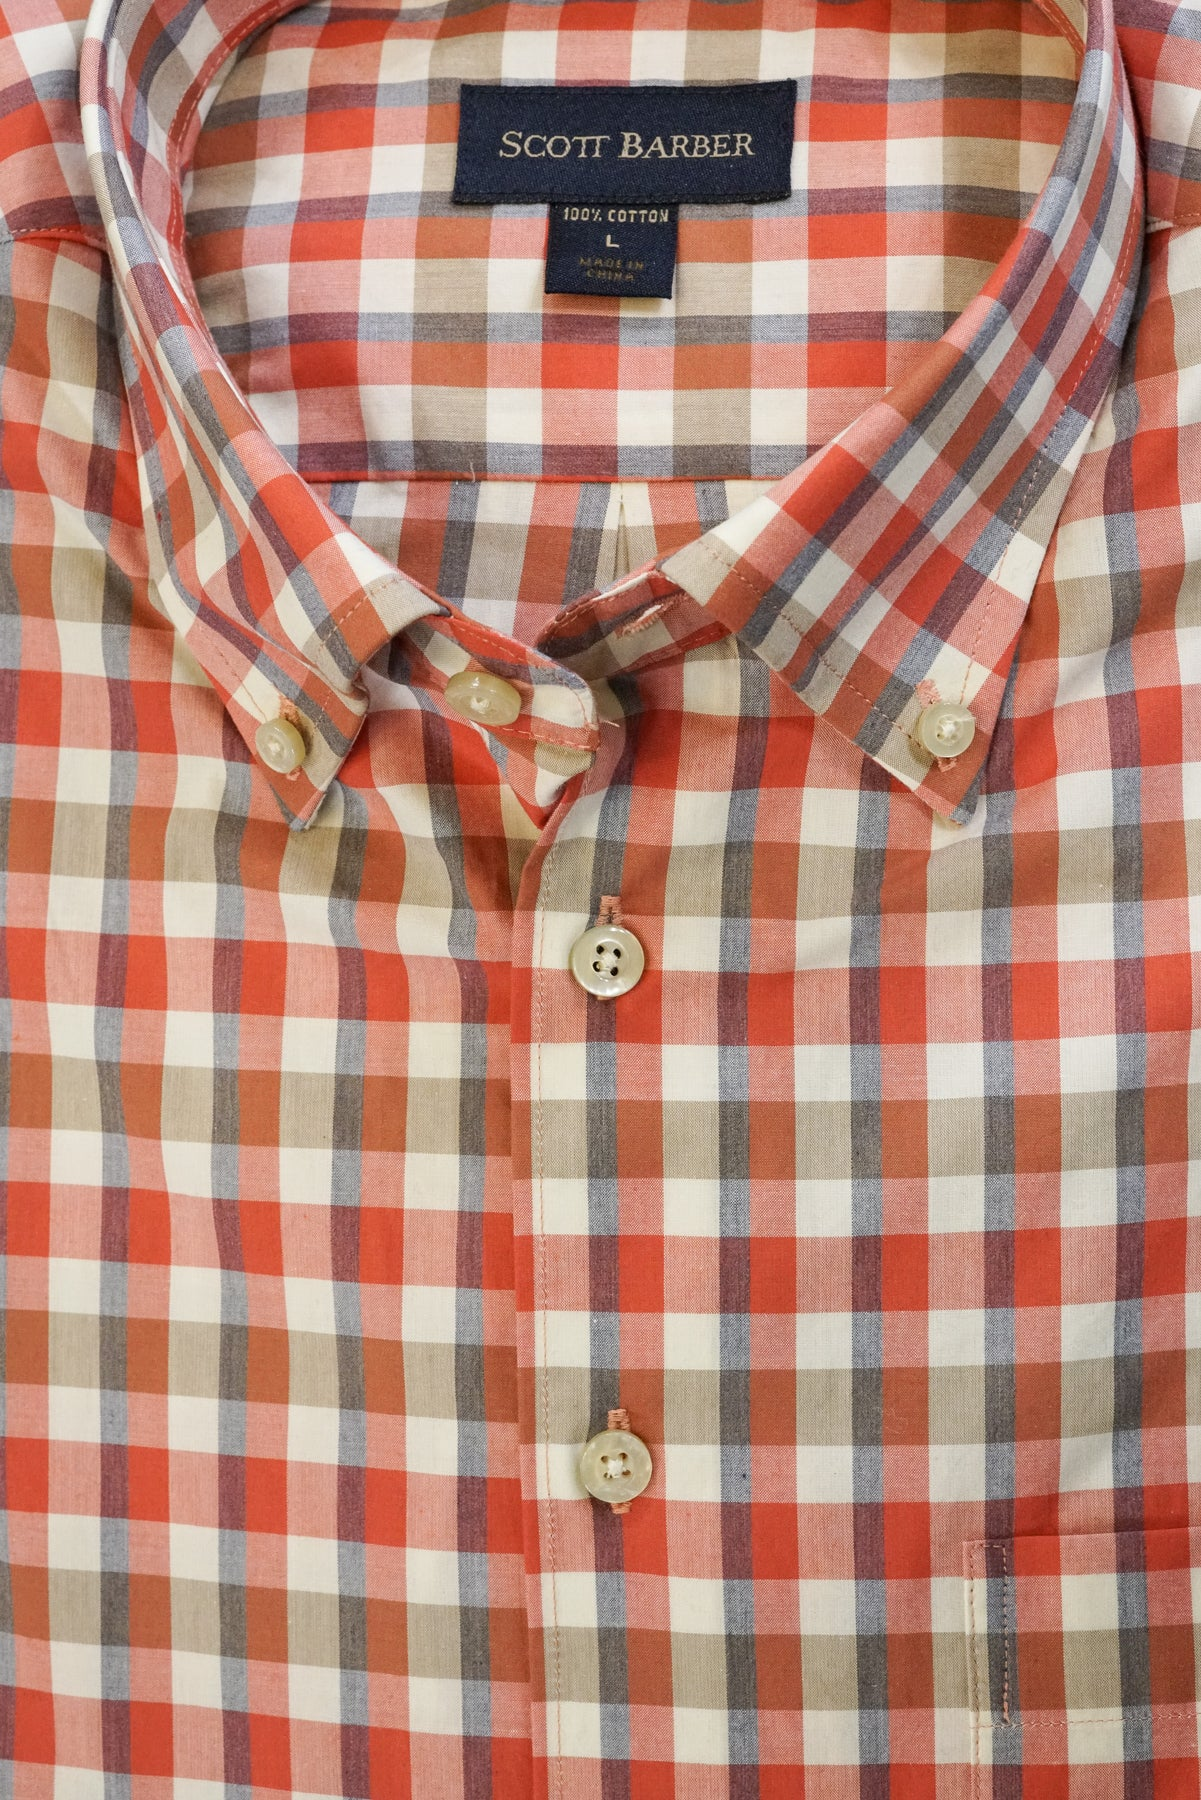 Clay Red, Olive and Ivory Plaid Button Down Collar by Scott Barber - Rainwater's Men's Clothing and Tuxedo Rental